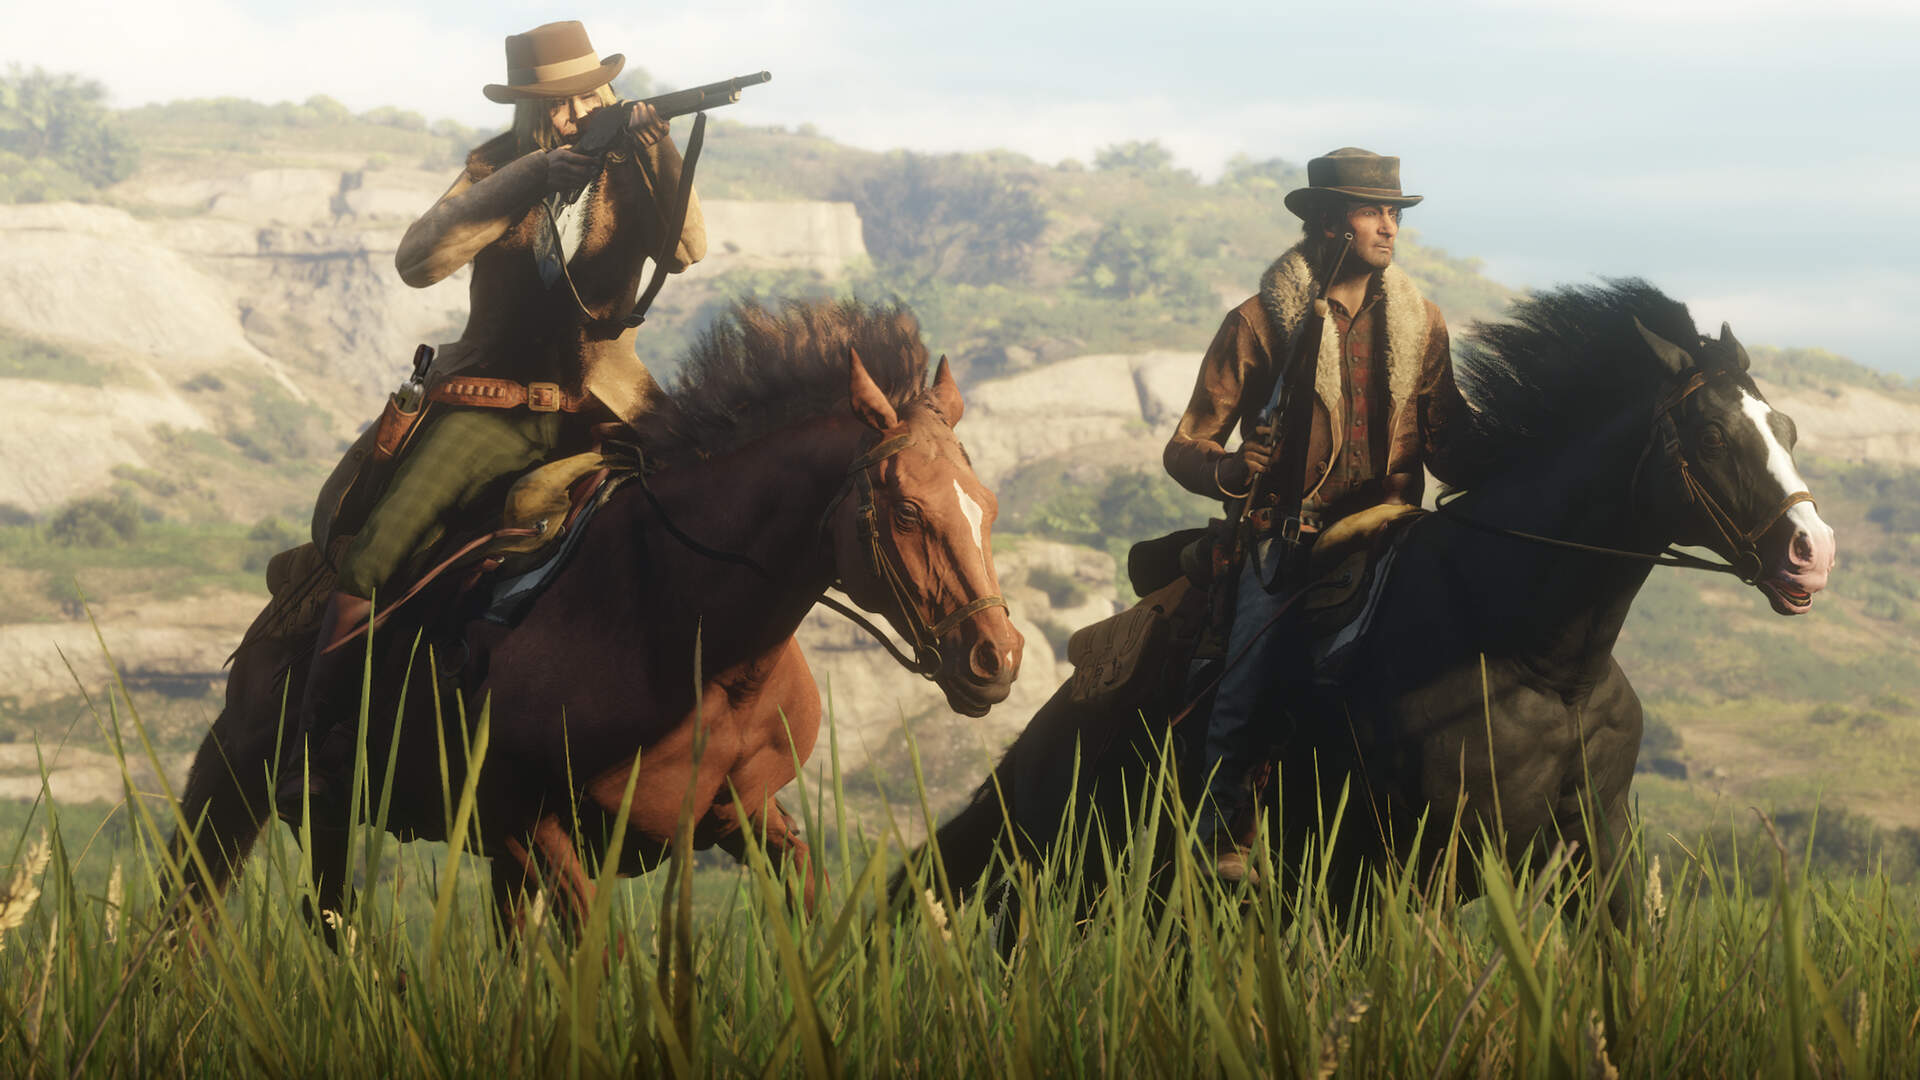 No Downside to Releasing Red Dead Redemption 2 on PC, Take-Two CEO Says